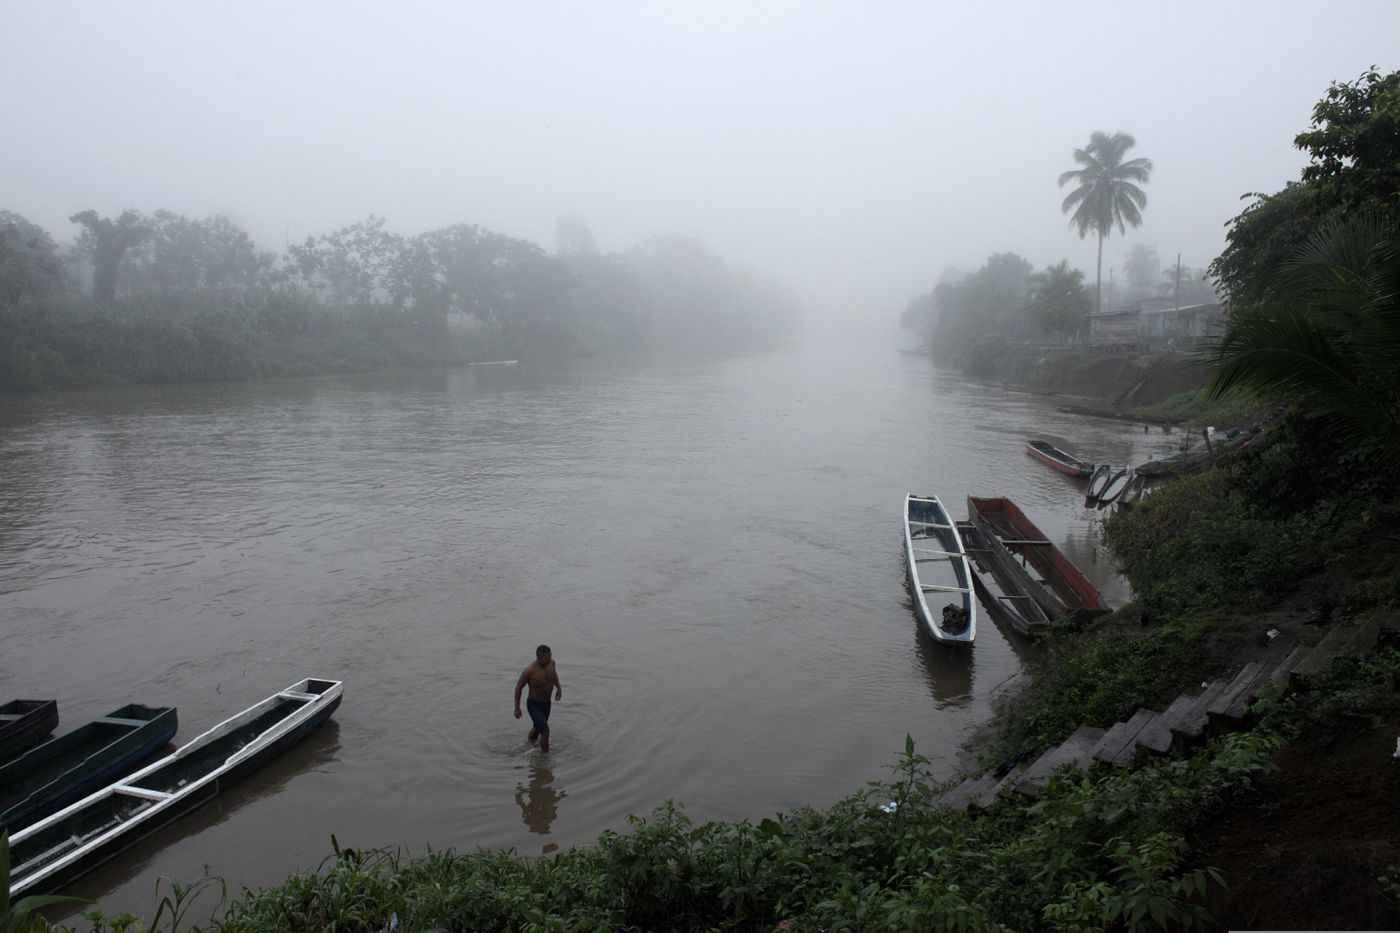 FILE - In this June 22, 2012, file photo, a man bathes in a river at dawn in the Darien Province on the border with Colombia, in Union Choco, Panama. The area is known as the Darien Gap, a 60-mile (97-kilometer) stretch of roadless jungle straddling the border of Colombia and Panama. One man's journey to America from his home in Mauritania was a dangerous and arduous one that took him through the Darien Gap. (AP Photo/Arnulfo Franco, File)